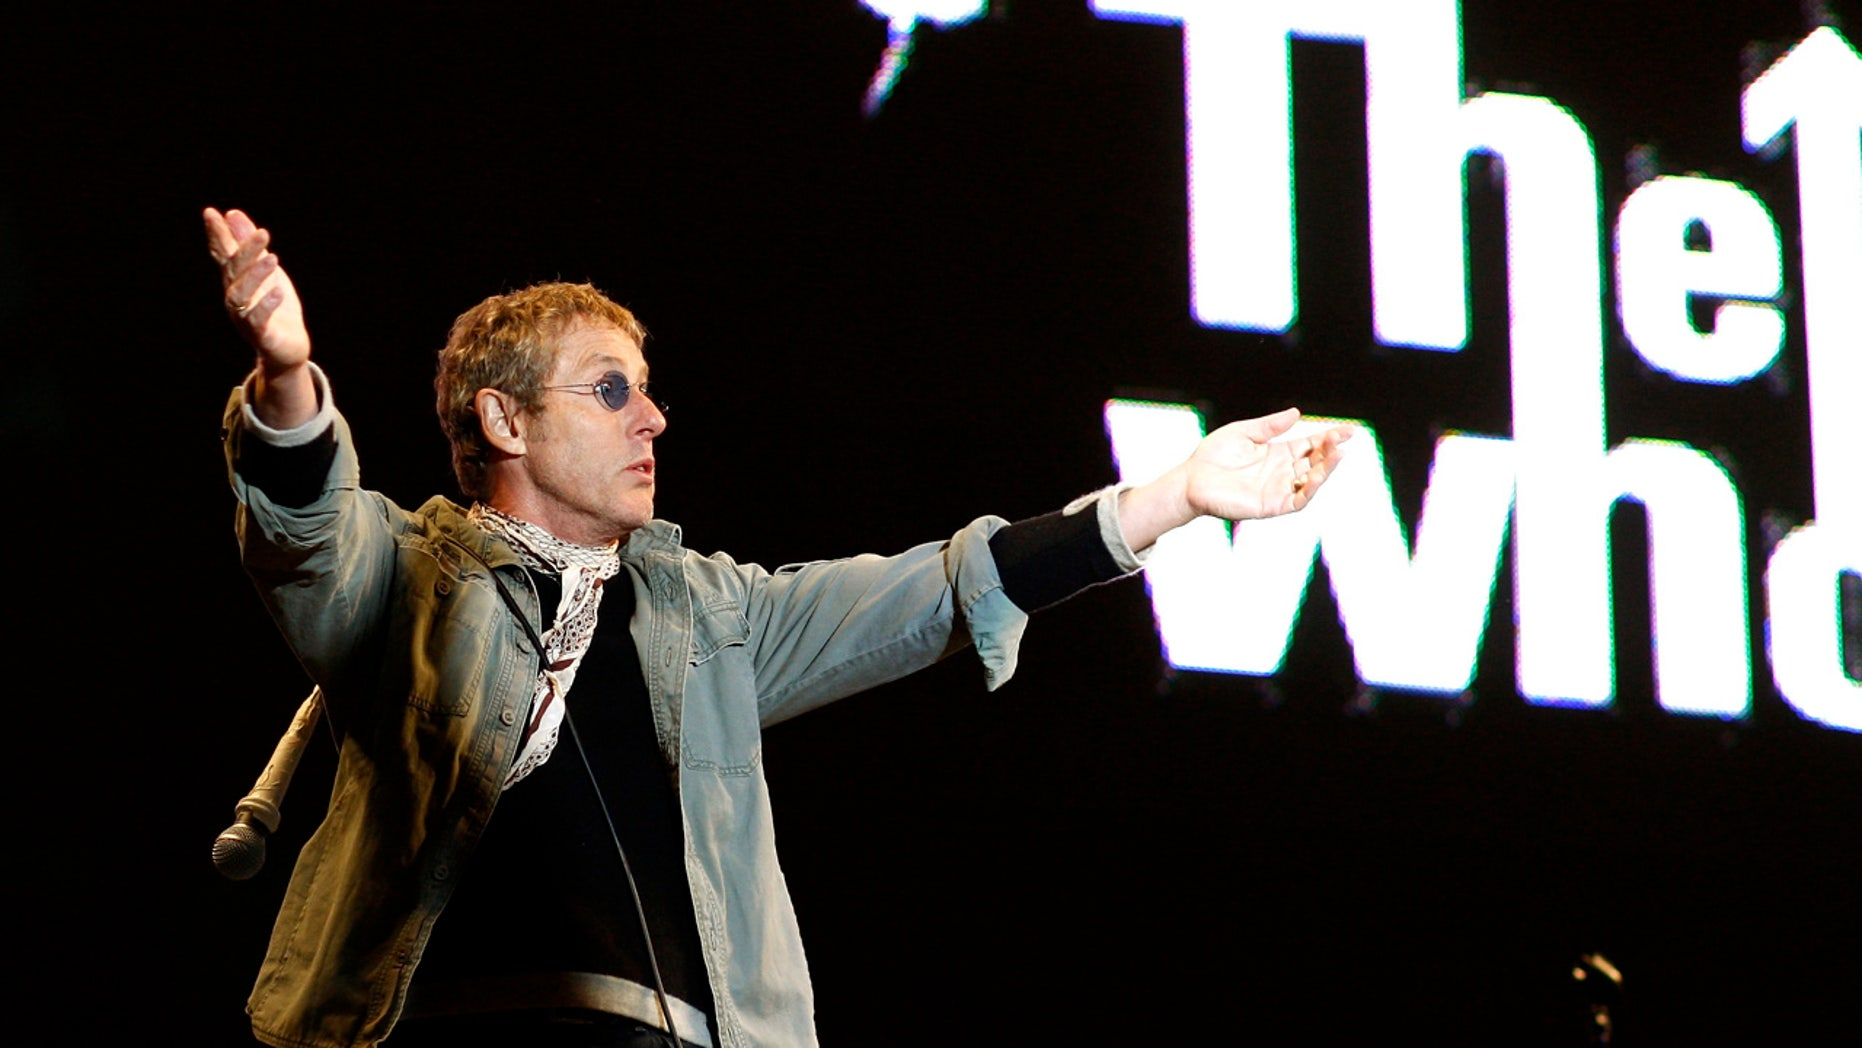 British band The Who's lead singer Roger Daltry performs during the Glastonbury music festival in Somerset, south-west England, June 24, 2007.